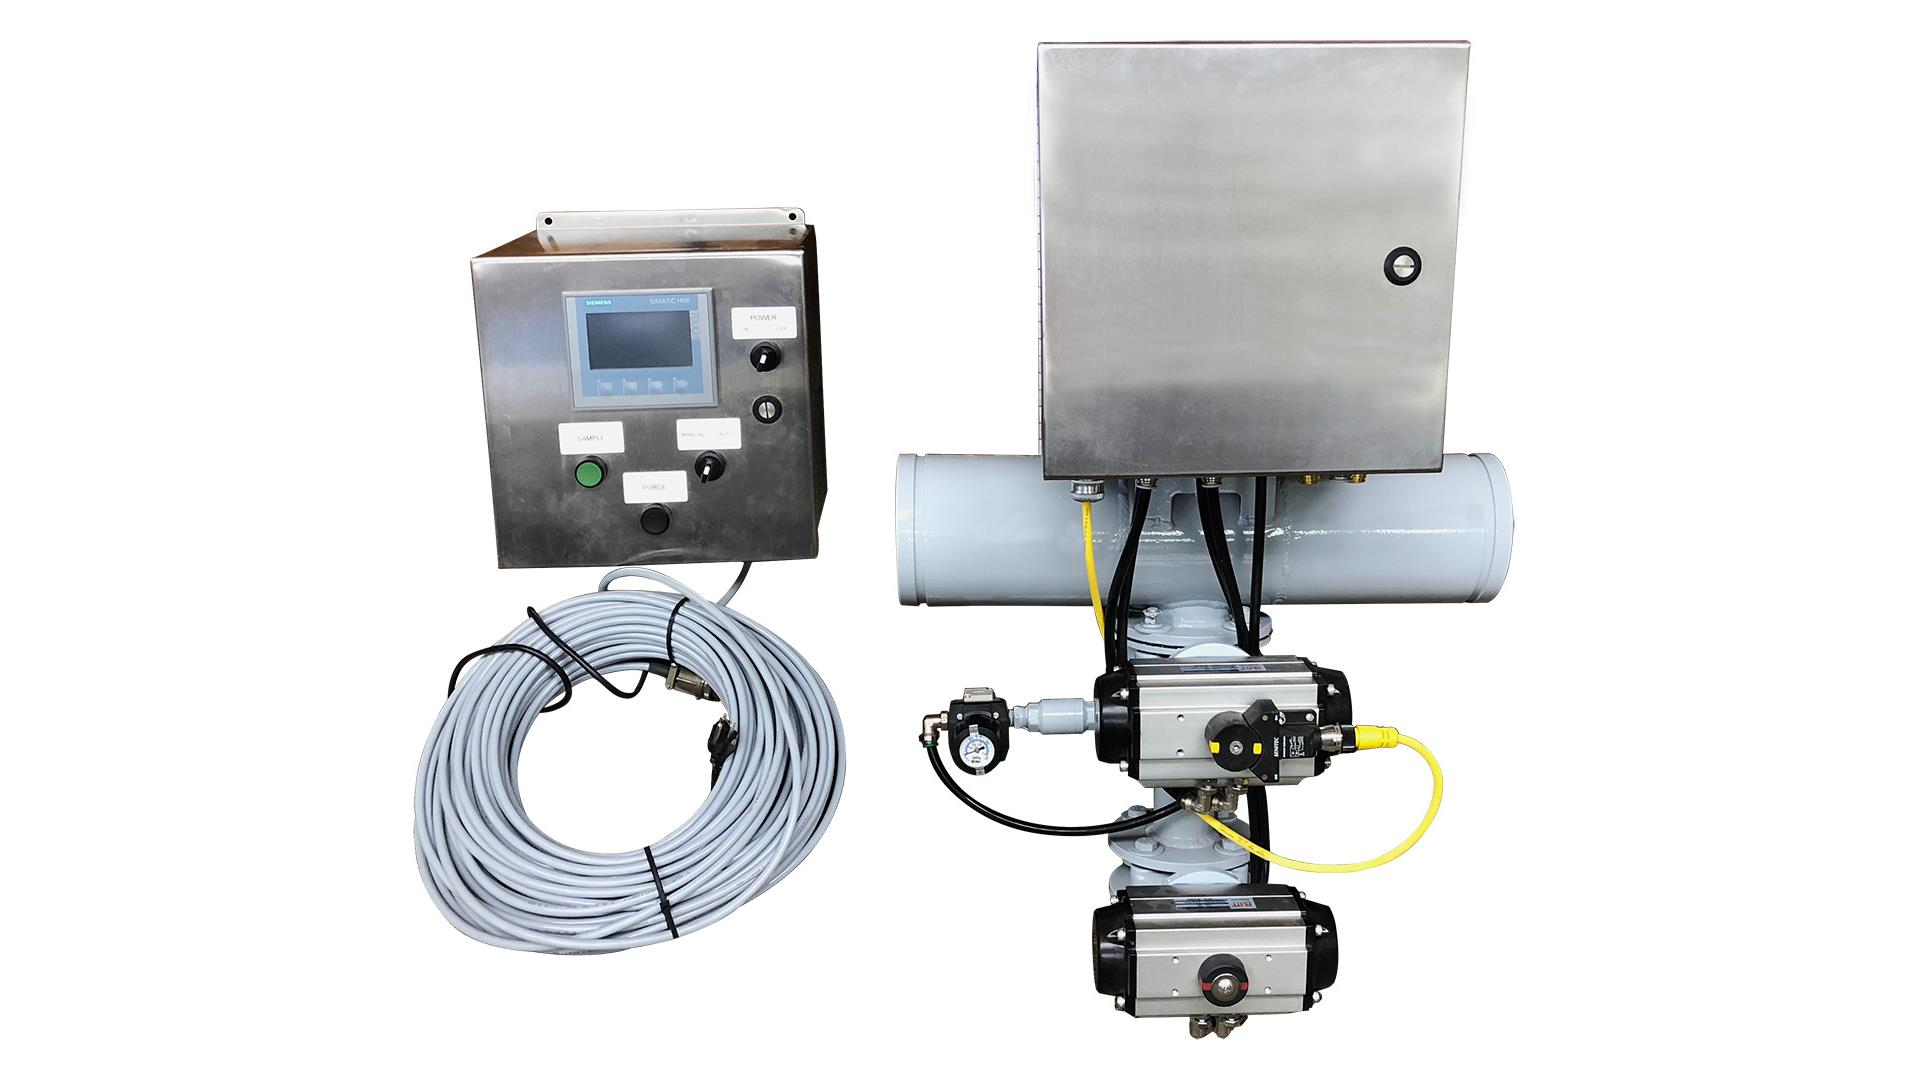 Components of a Wilco Automatic Sample Catcher System